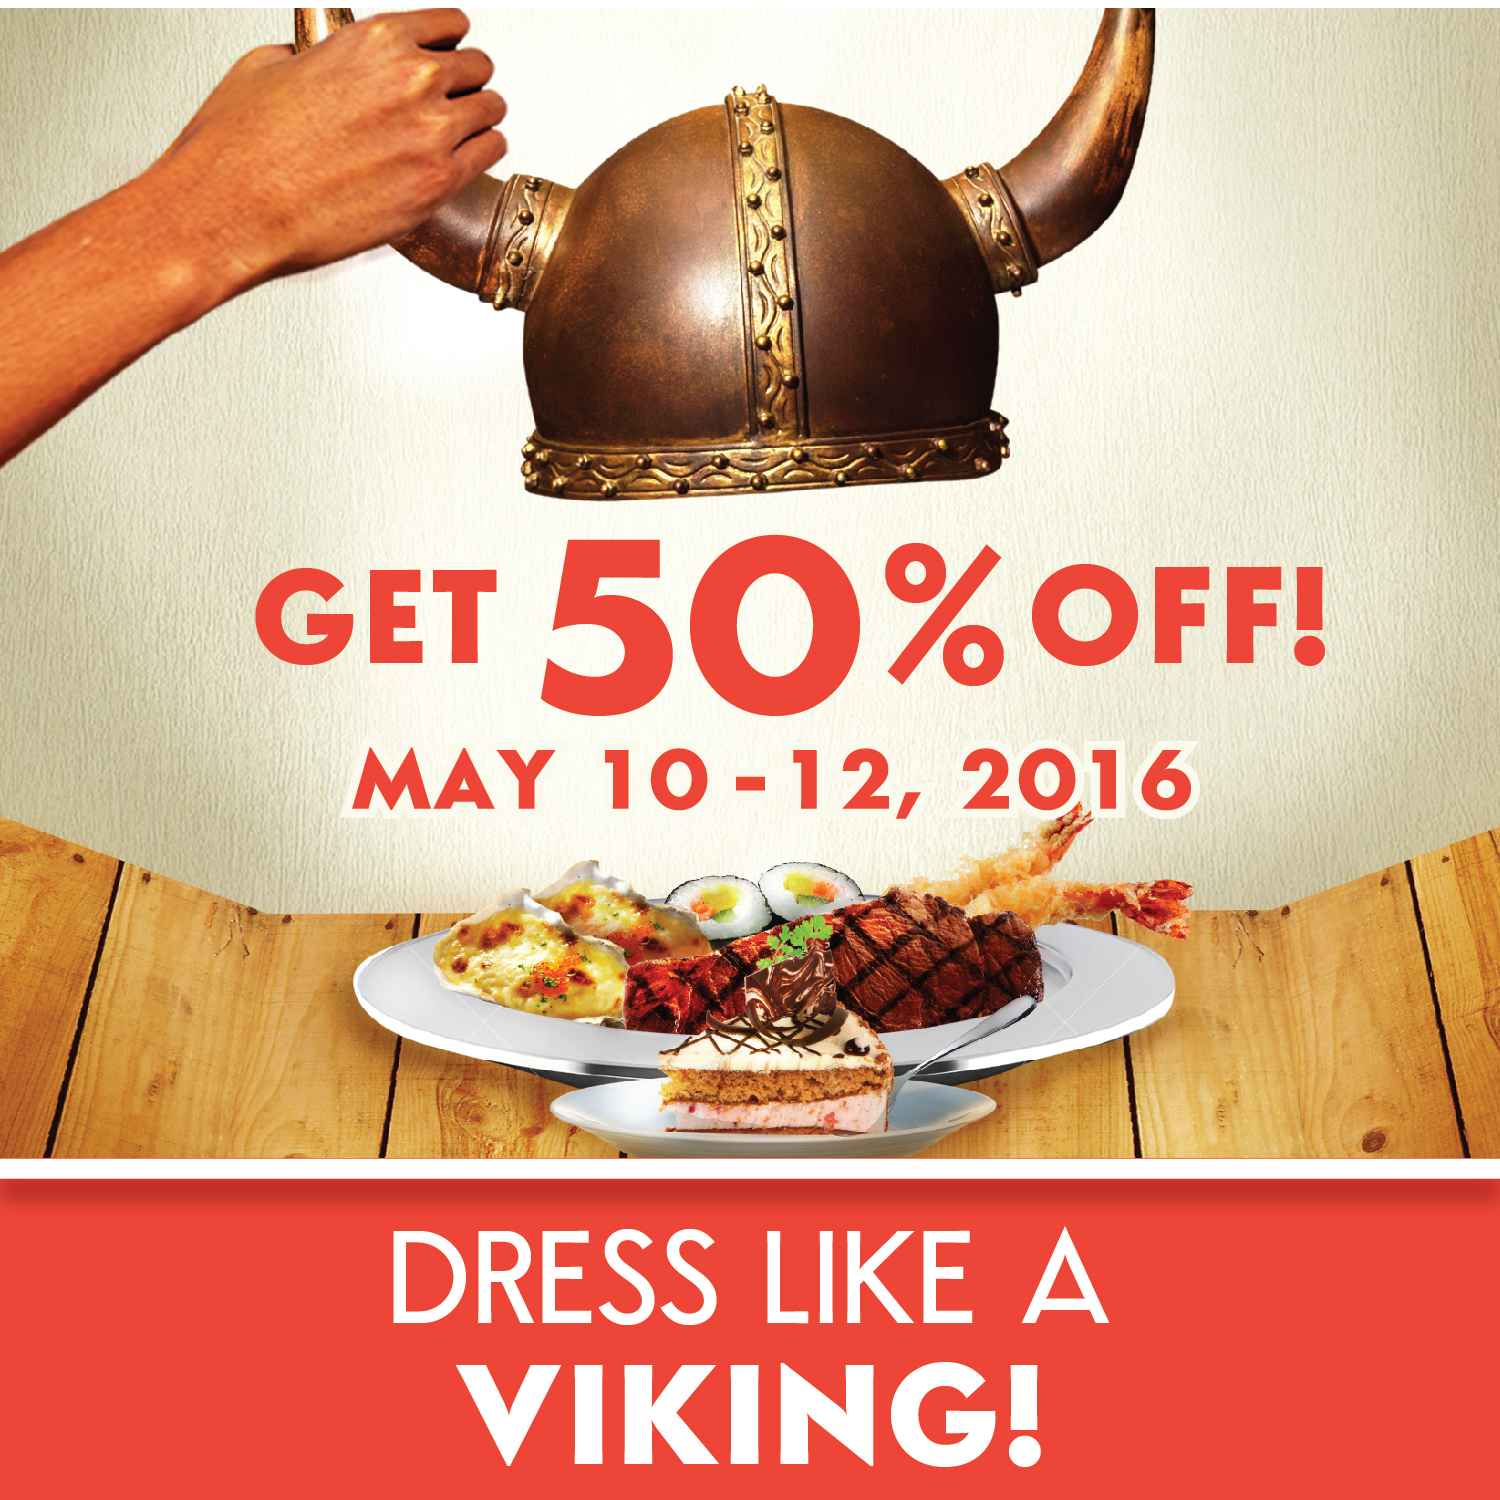 FA_Vikings_Dress like a Viking Promo promo_5x5-01